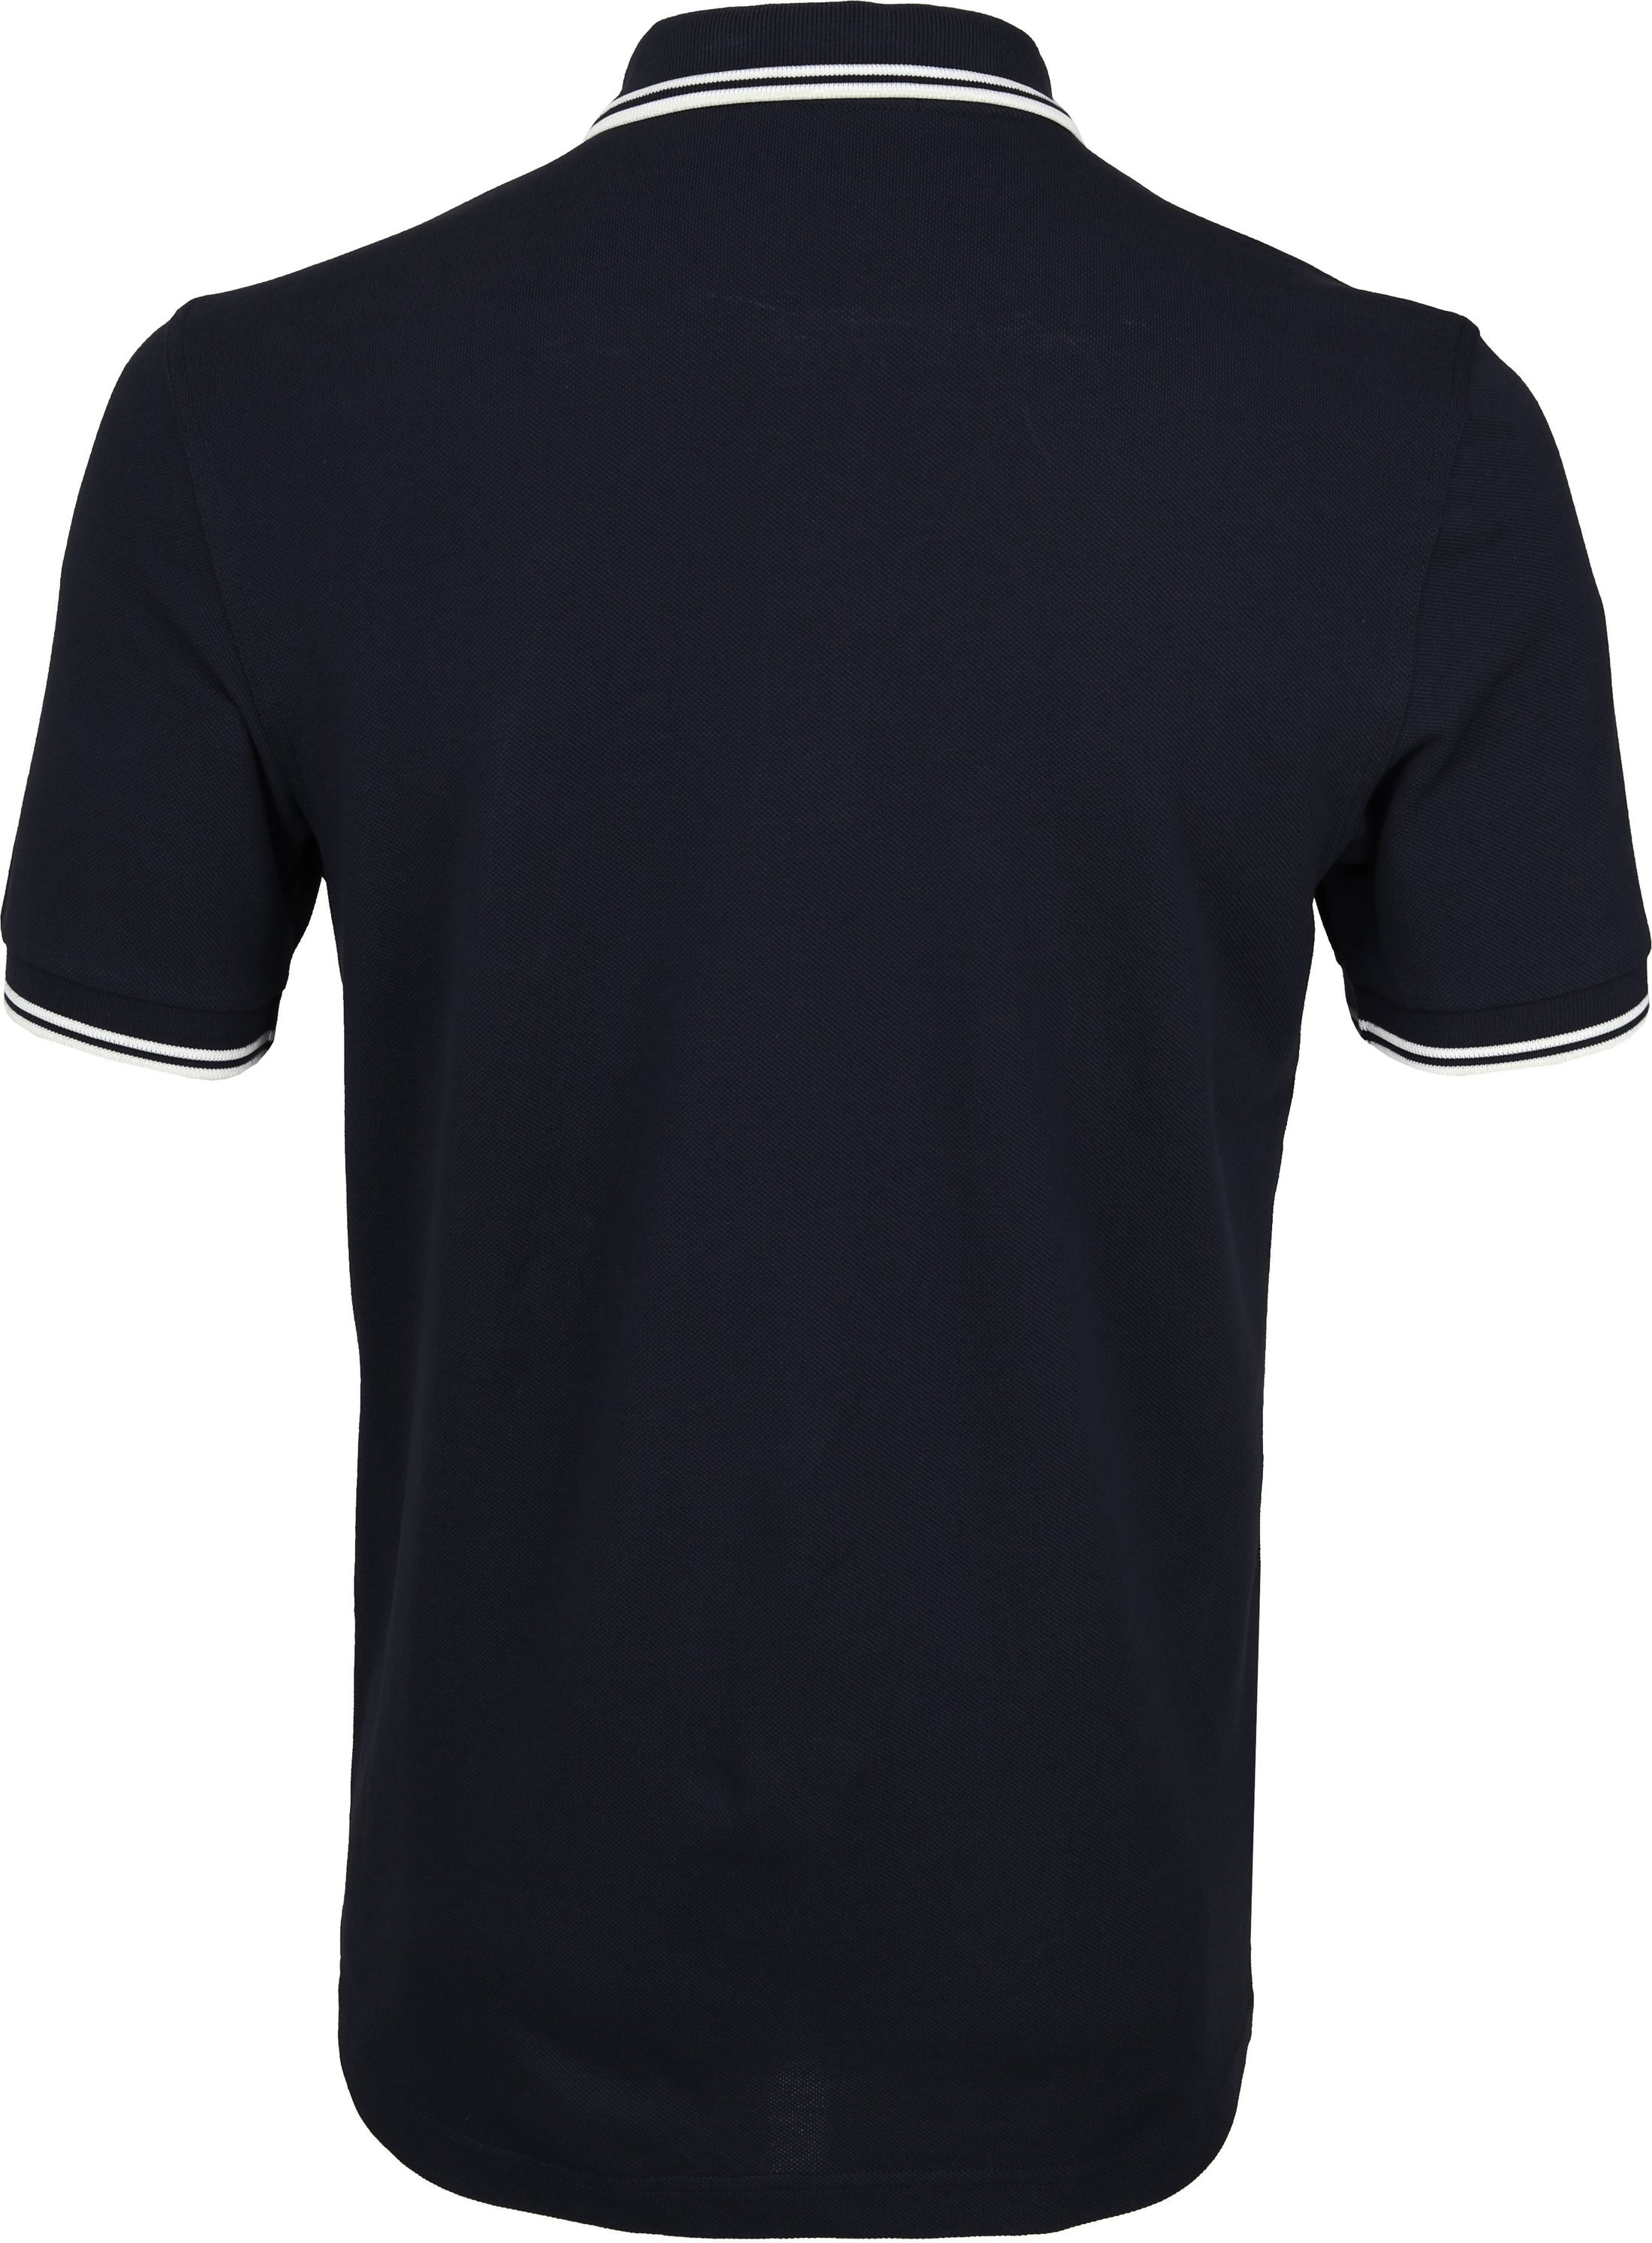 Fred Perry Polo Shirt Navy White foto 2